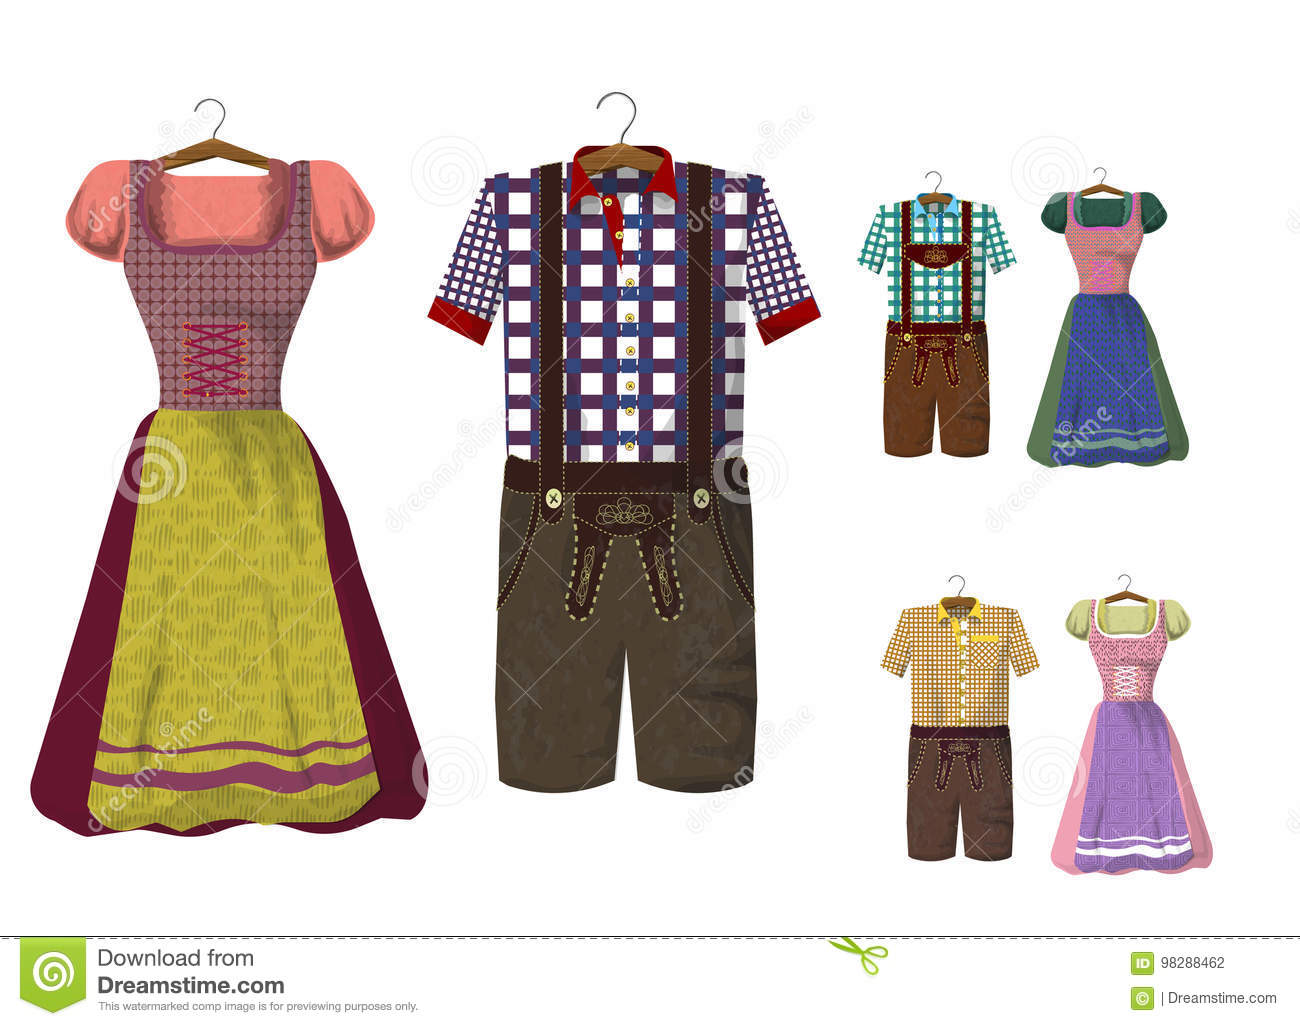 Set of Bavarian clothing Dirdle and Lederhosen